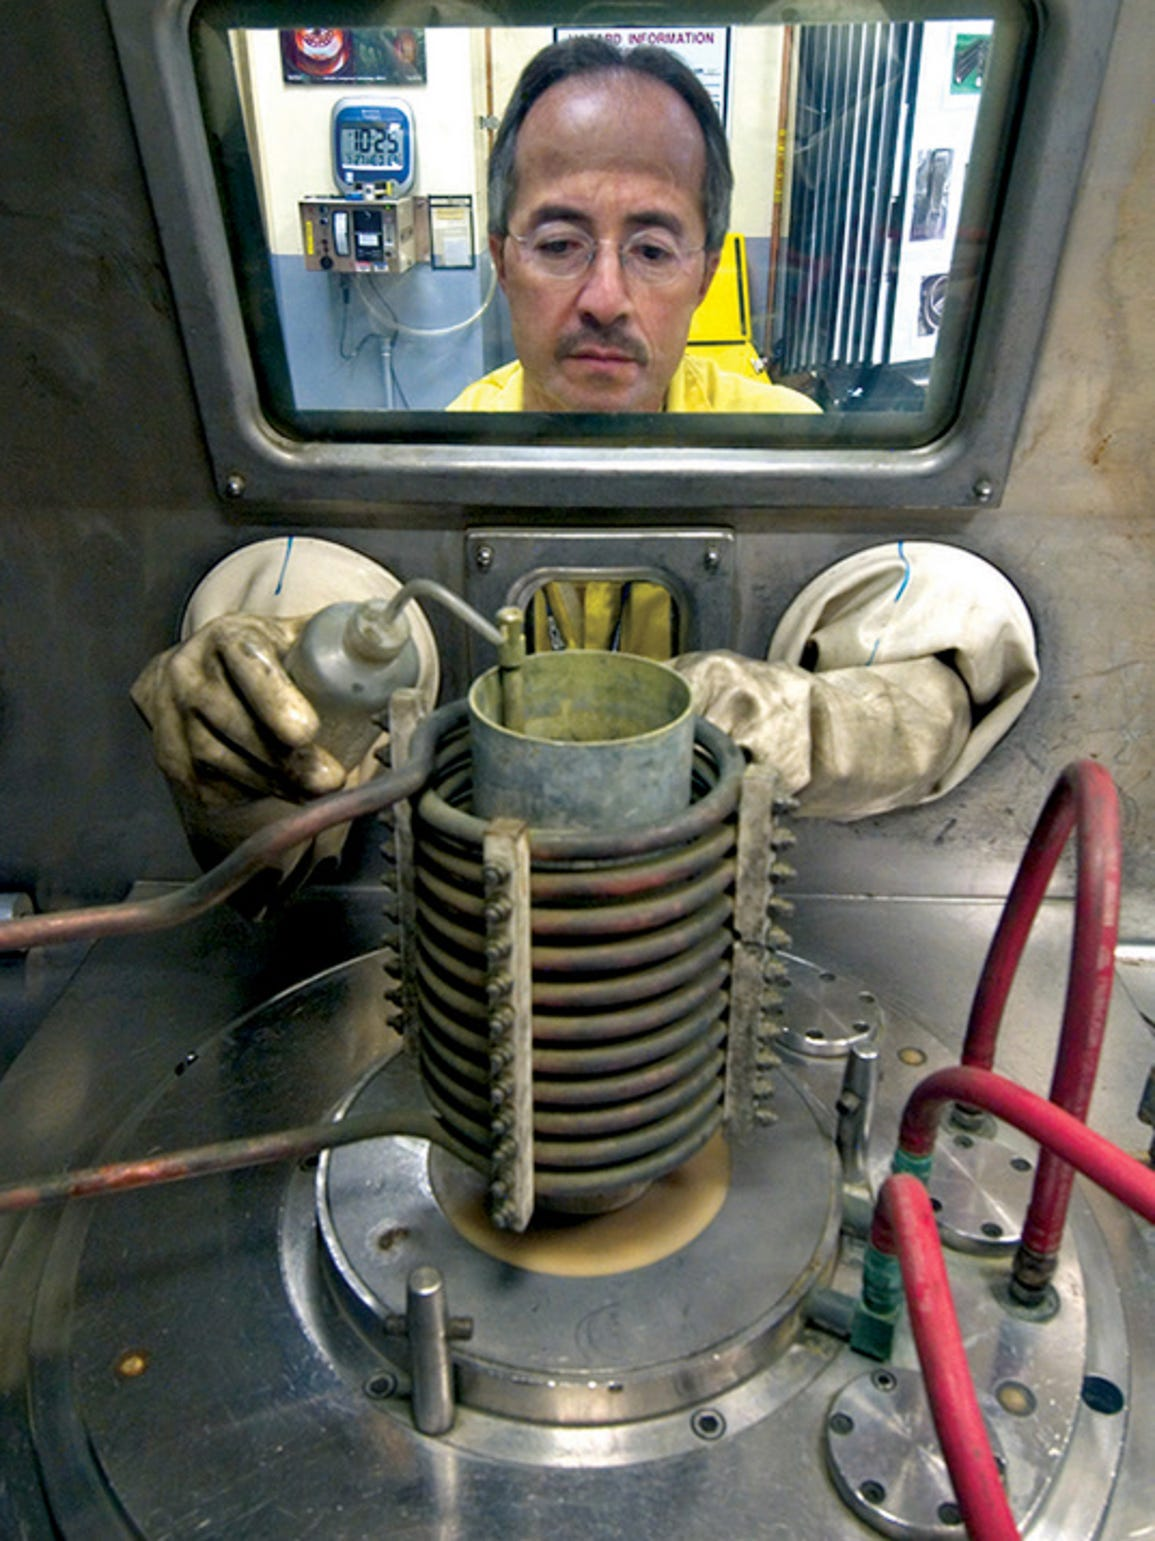 Plutonium work at Los Alamos generally takes place